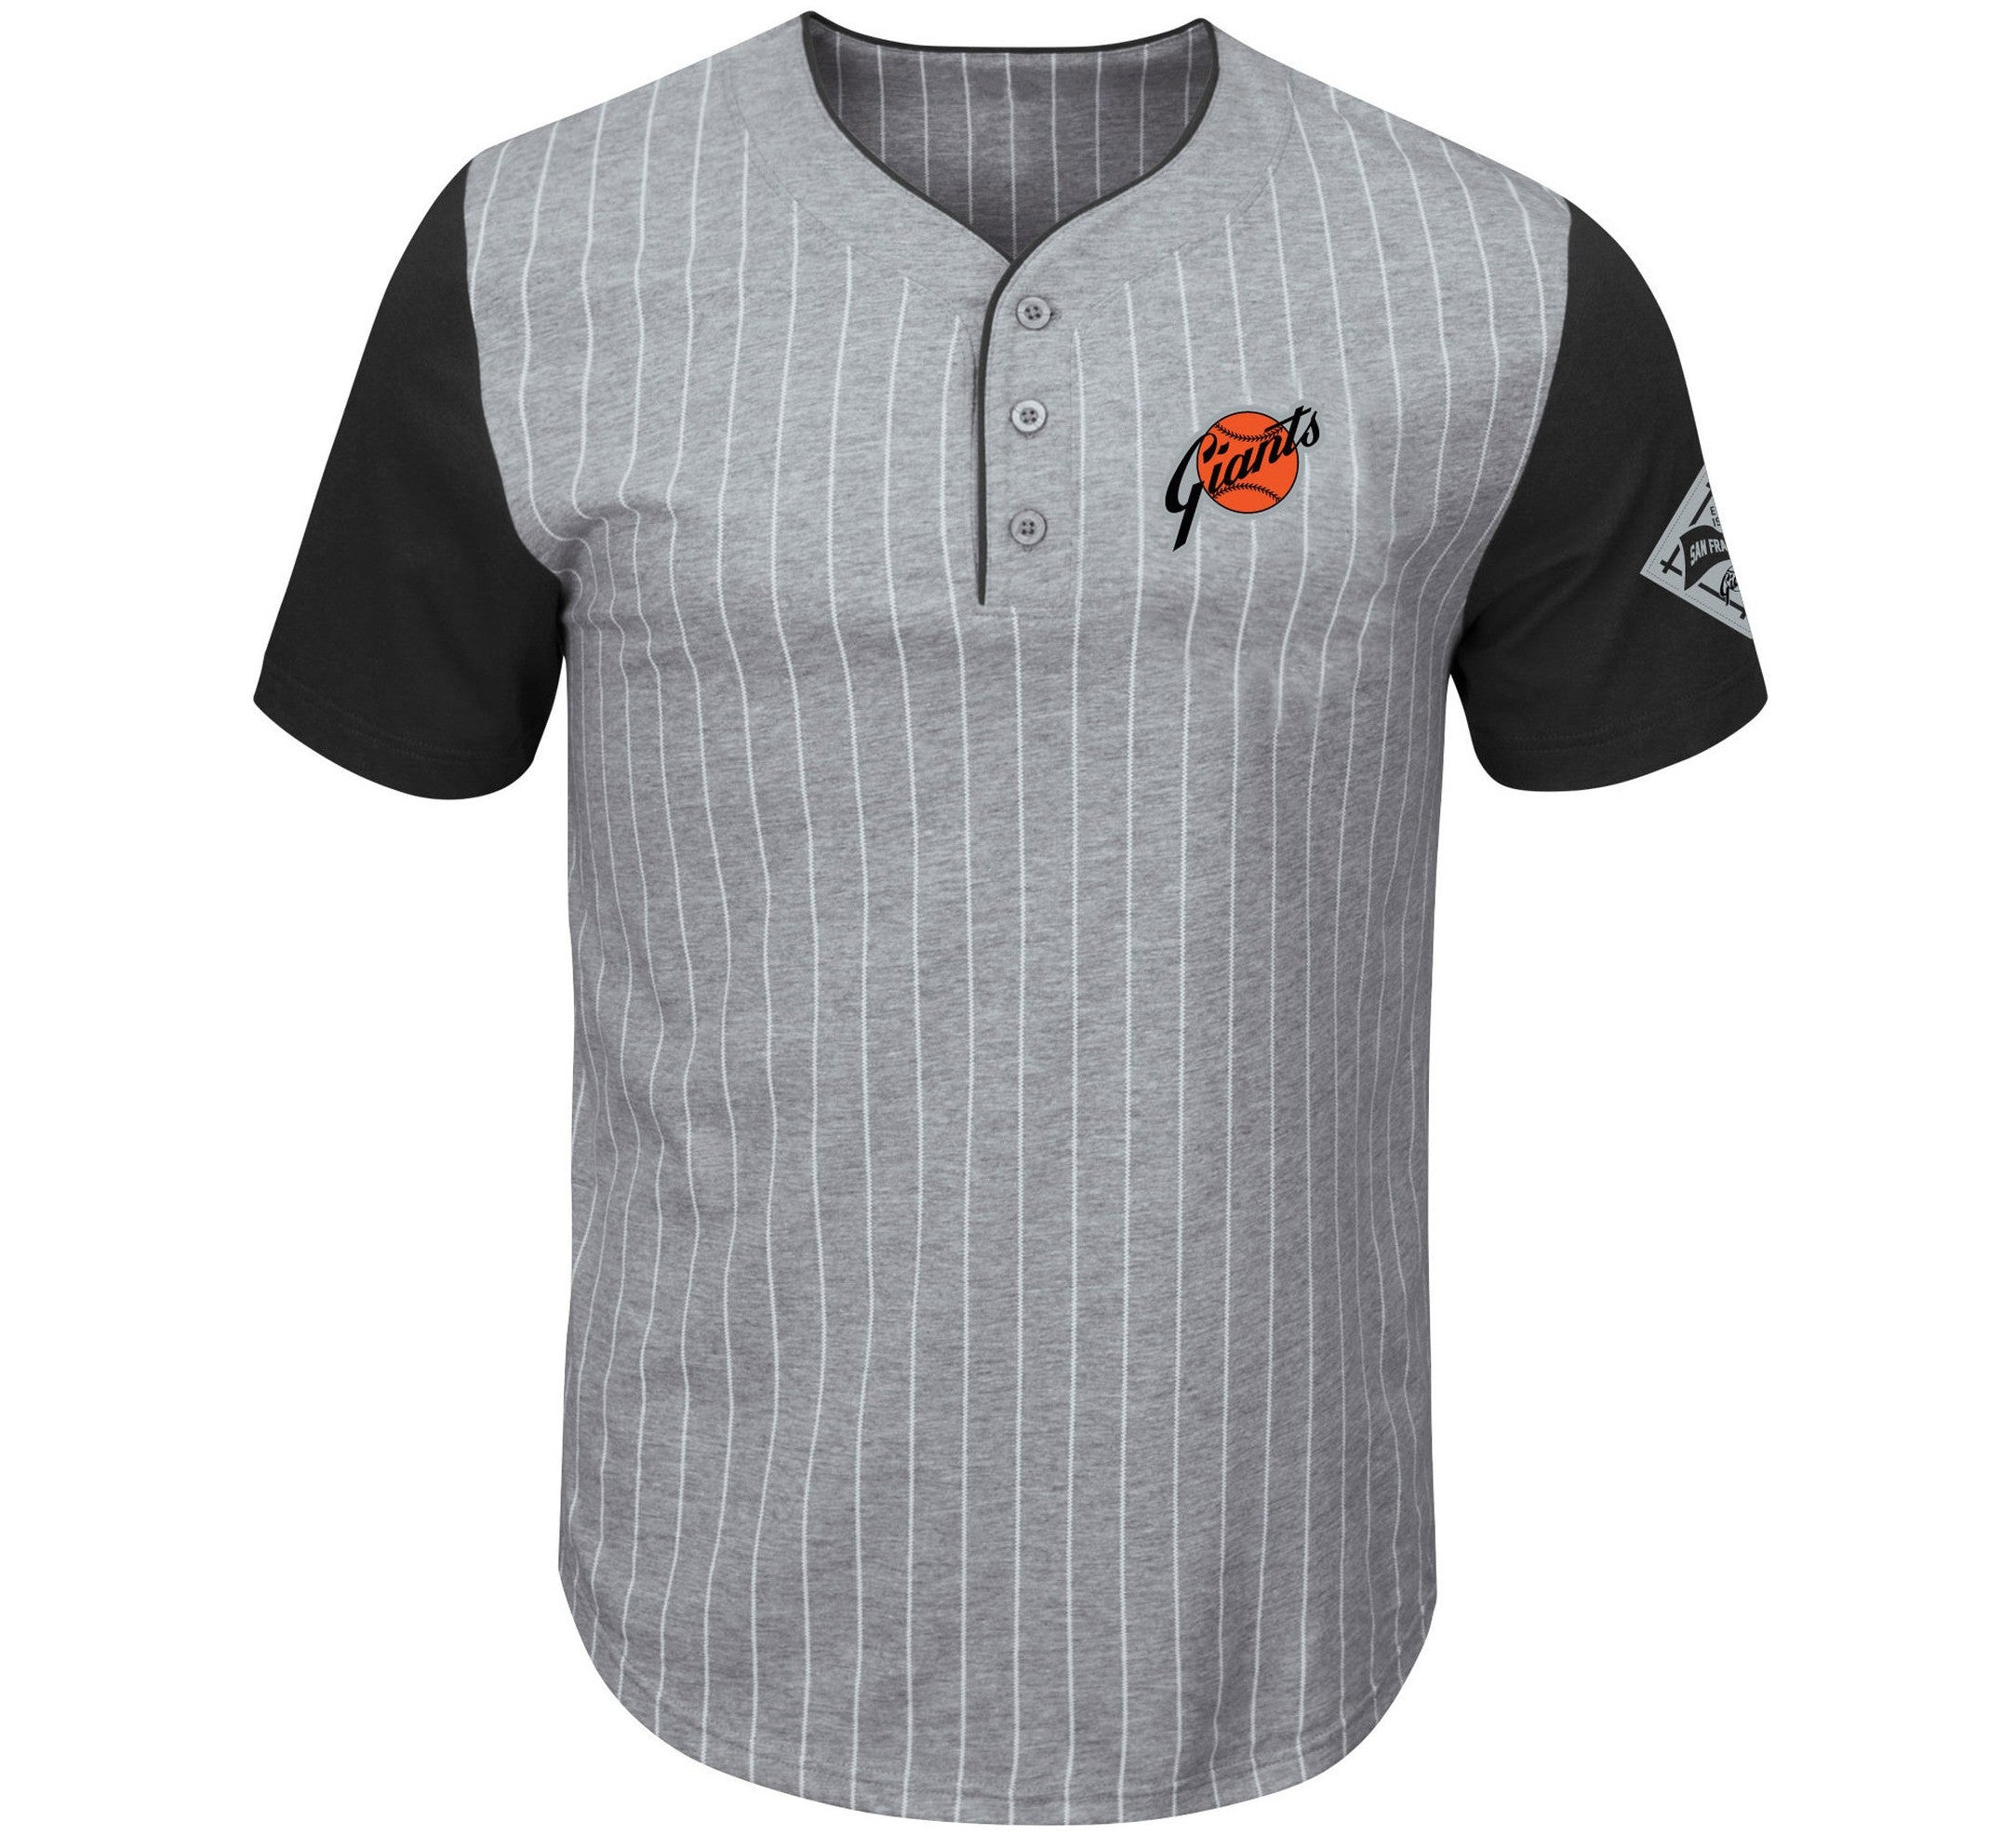 new style 6d1f2 6635a Giants Retro Majestic Jersey